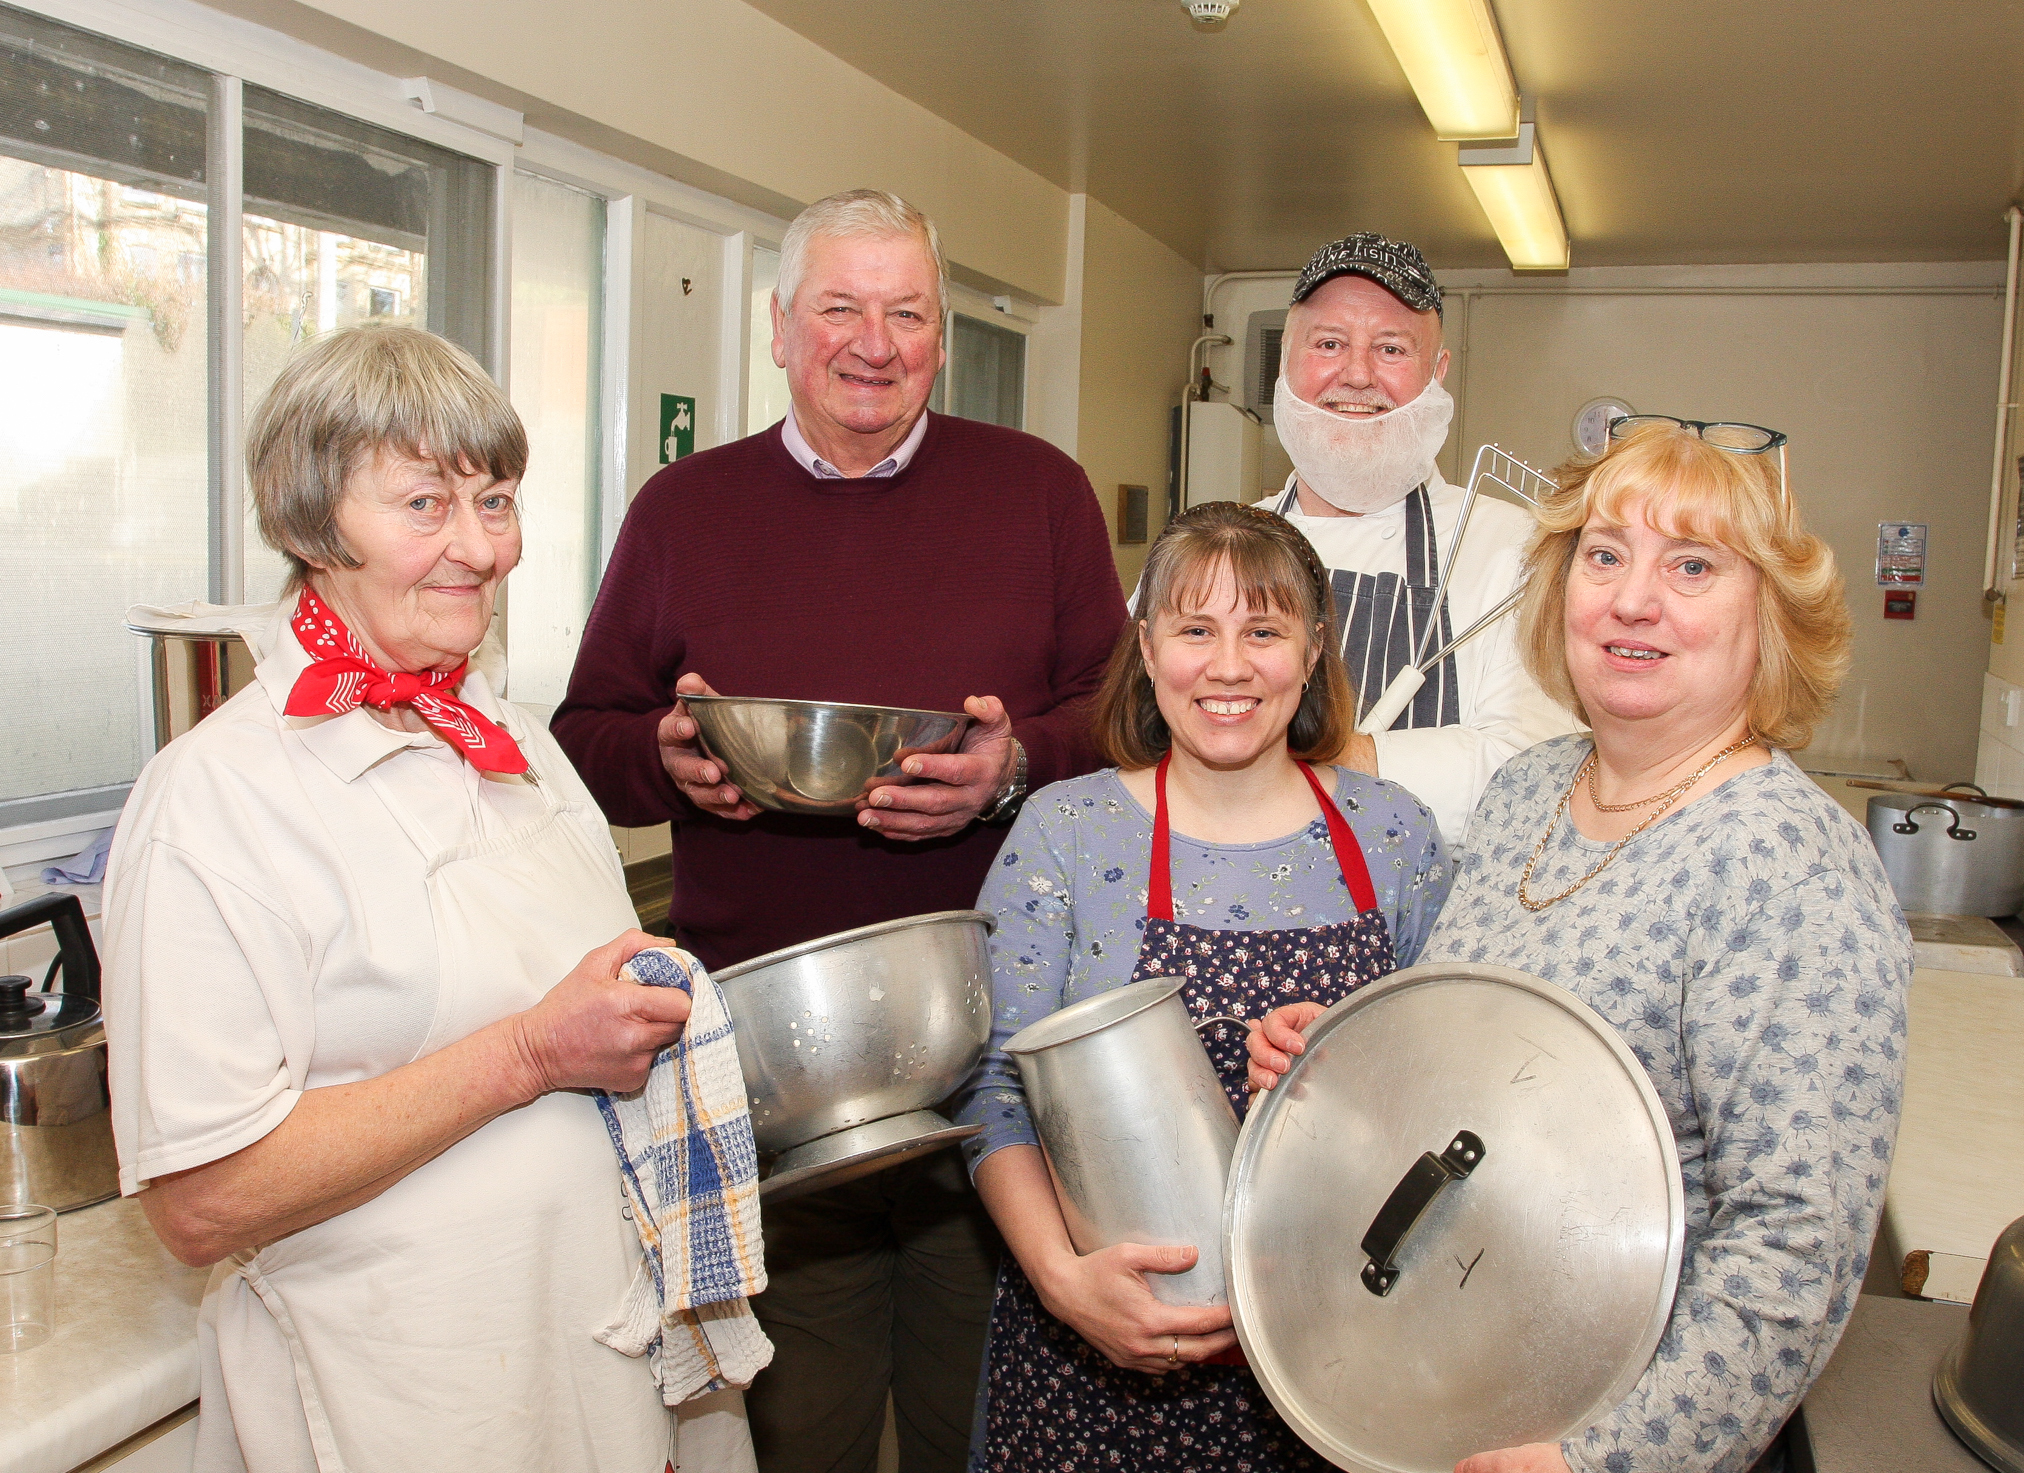 The five cooks that take it in terns to cook each week. They include Ann Weir, Neville Farmer, Tenille Downy, Bob Dunnett and Christine Phillips. Picture: Ernie Husson